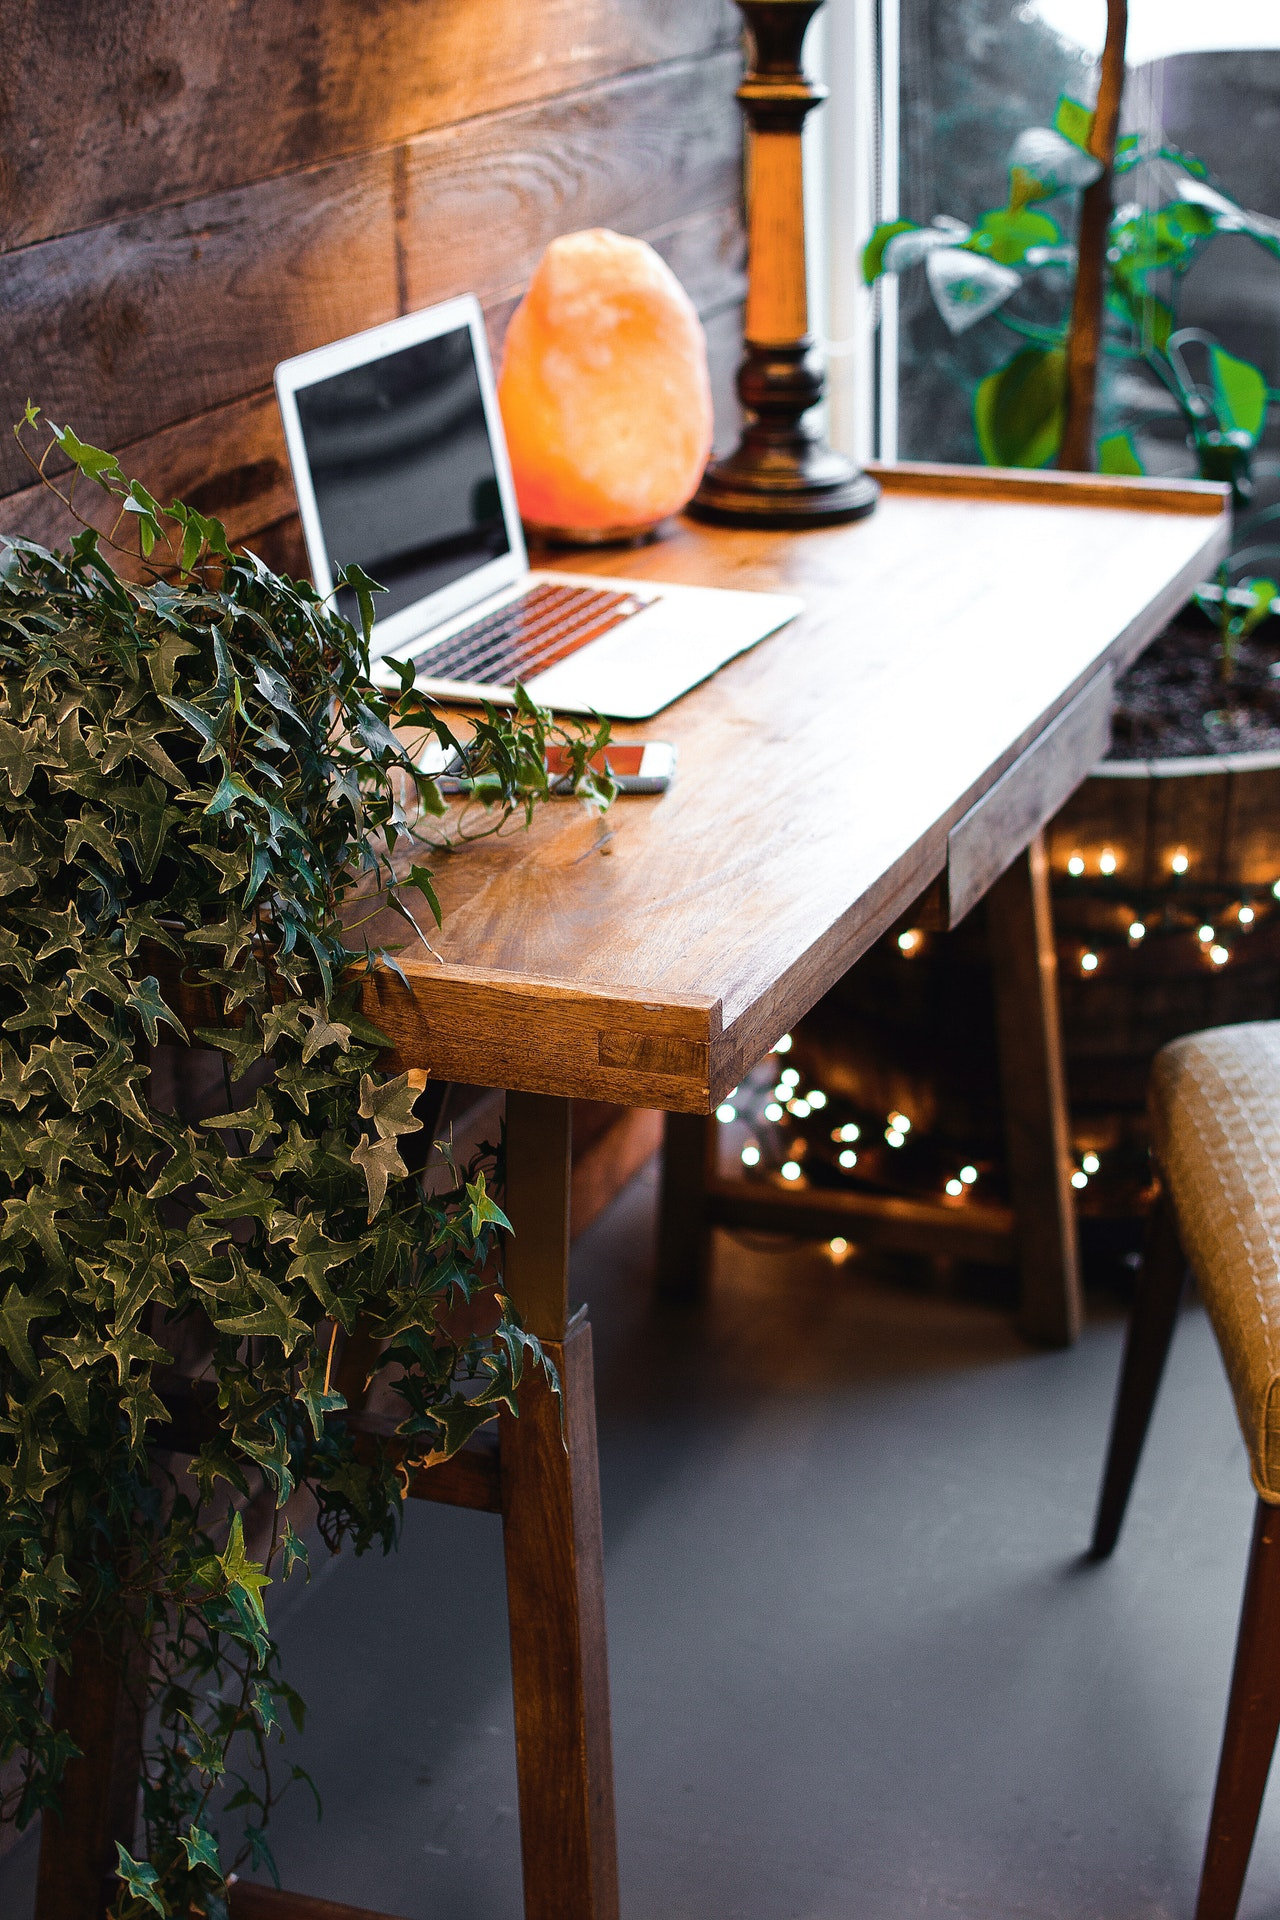 Home office with laptop and plants